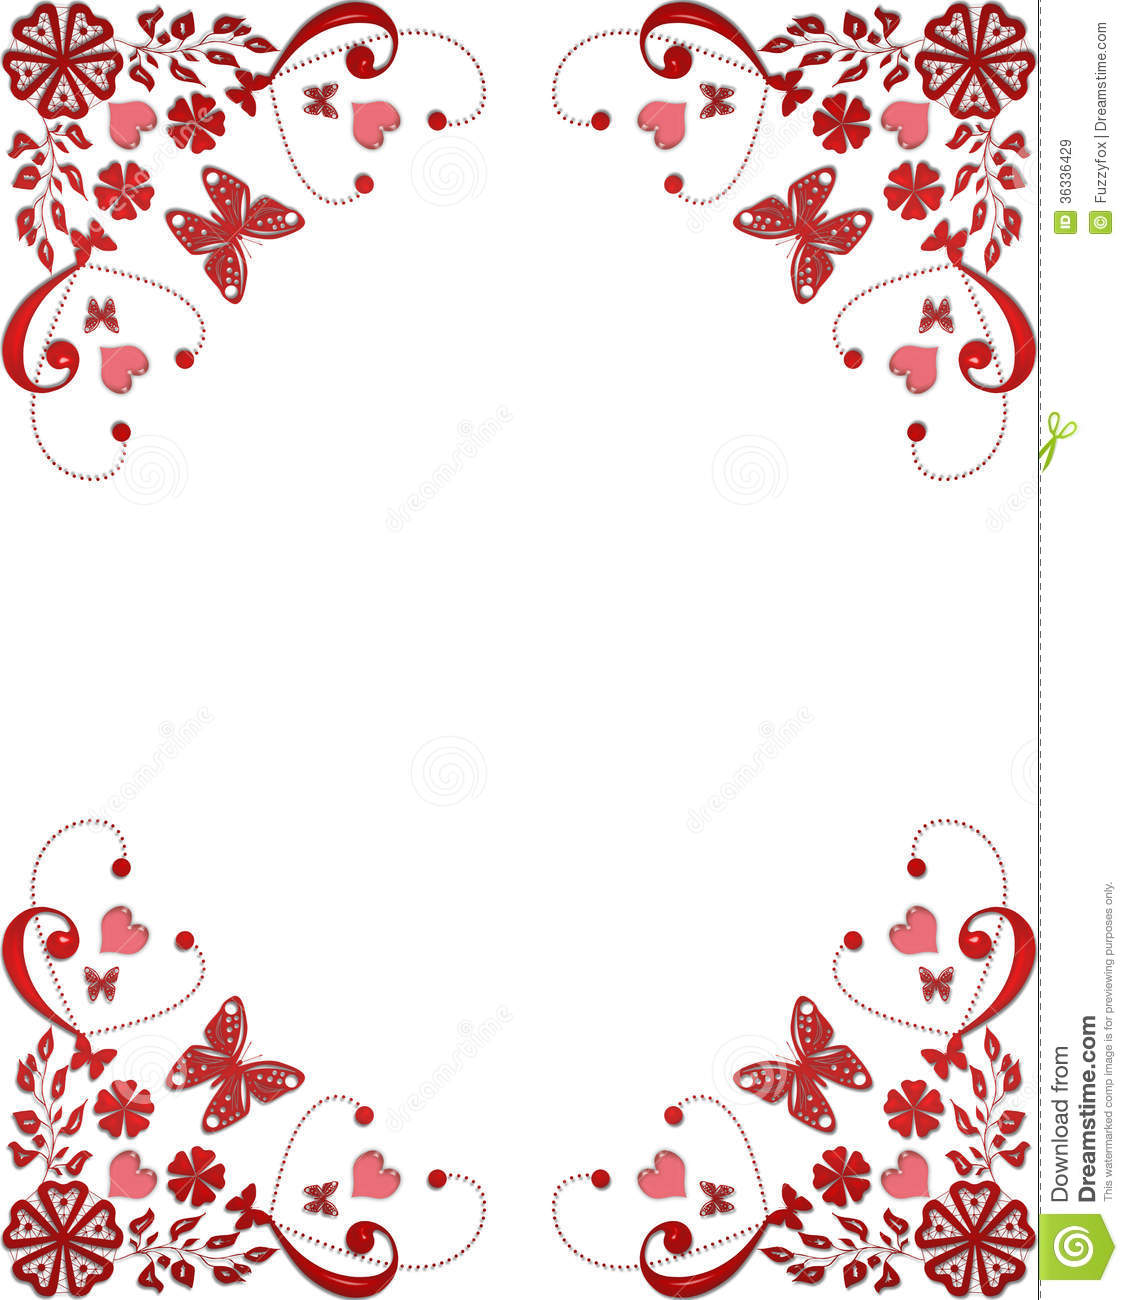 Falling Cherry Blossom Wallpaper Hd Red Frame Floral Border With Butterflies And Hearts